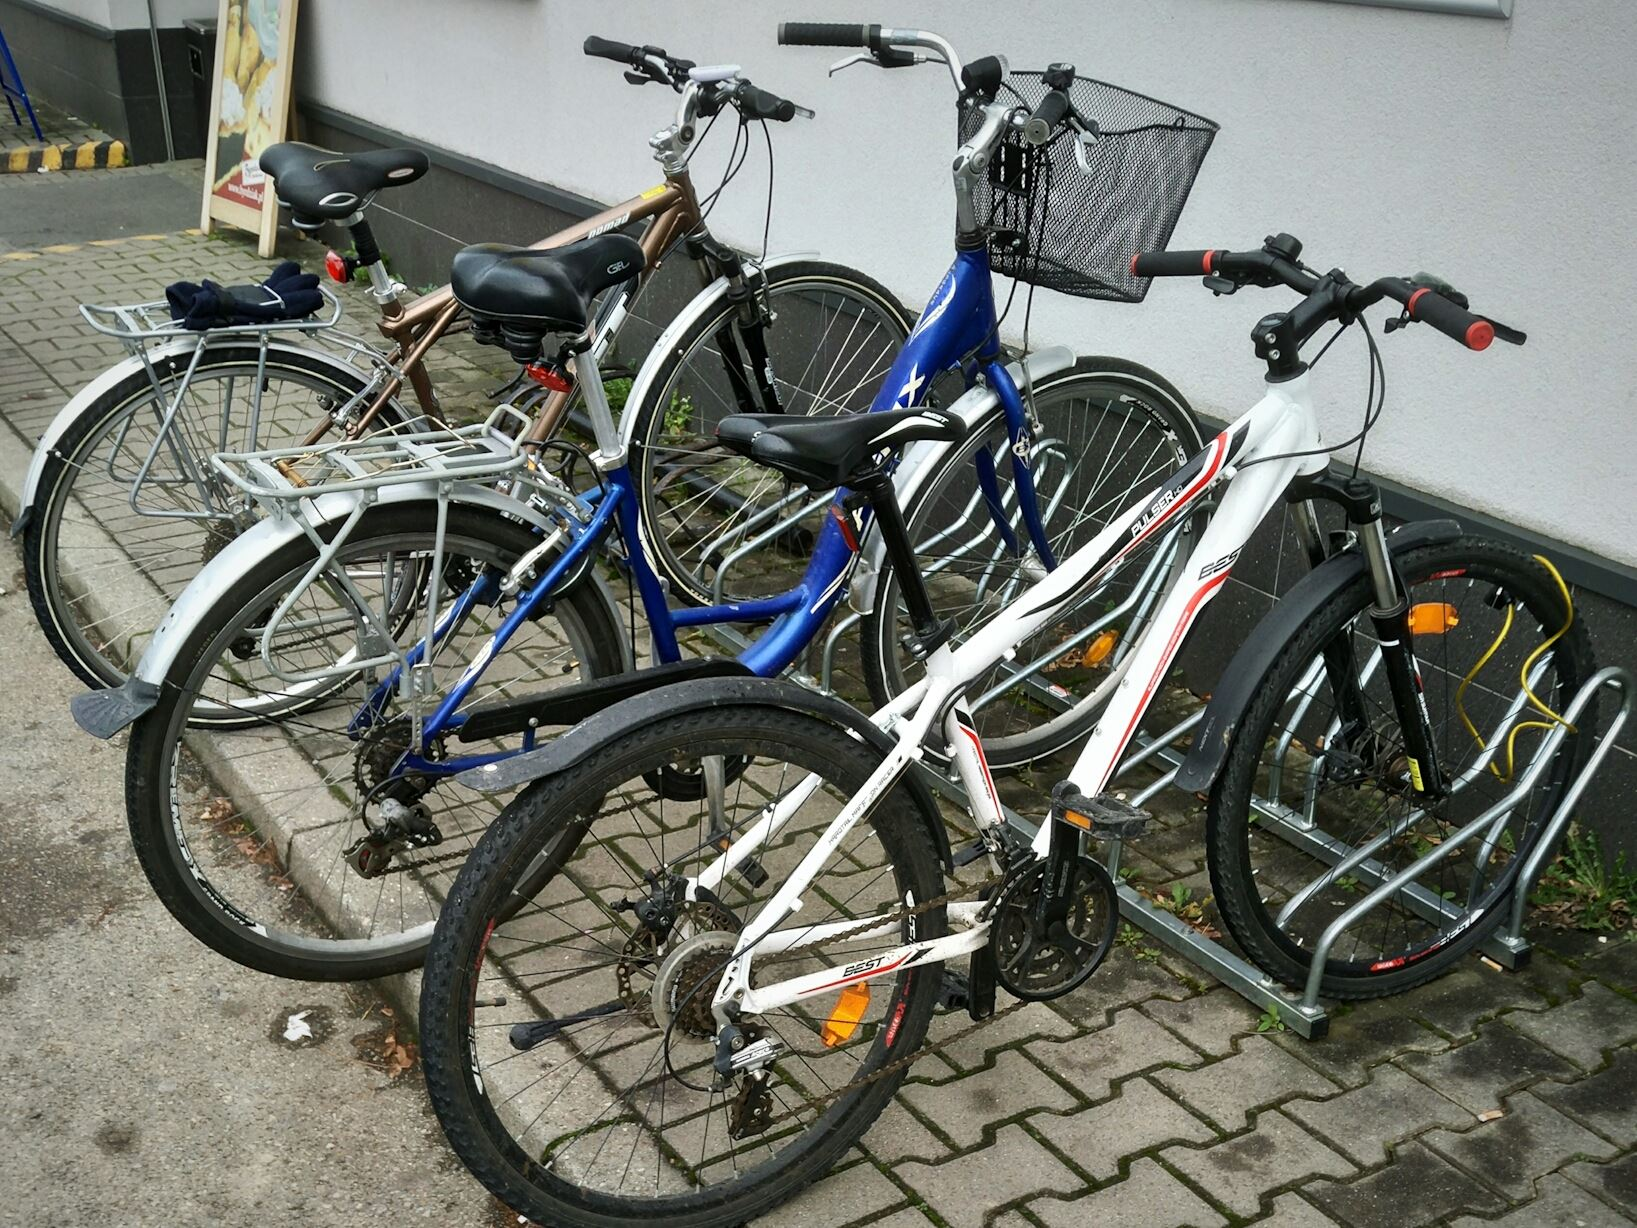 Bikes parked in a bike rack